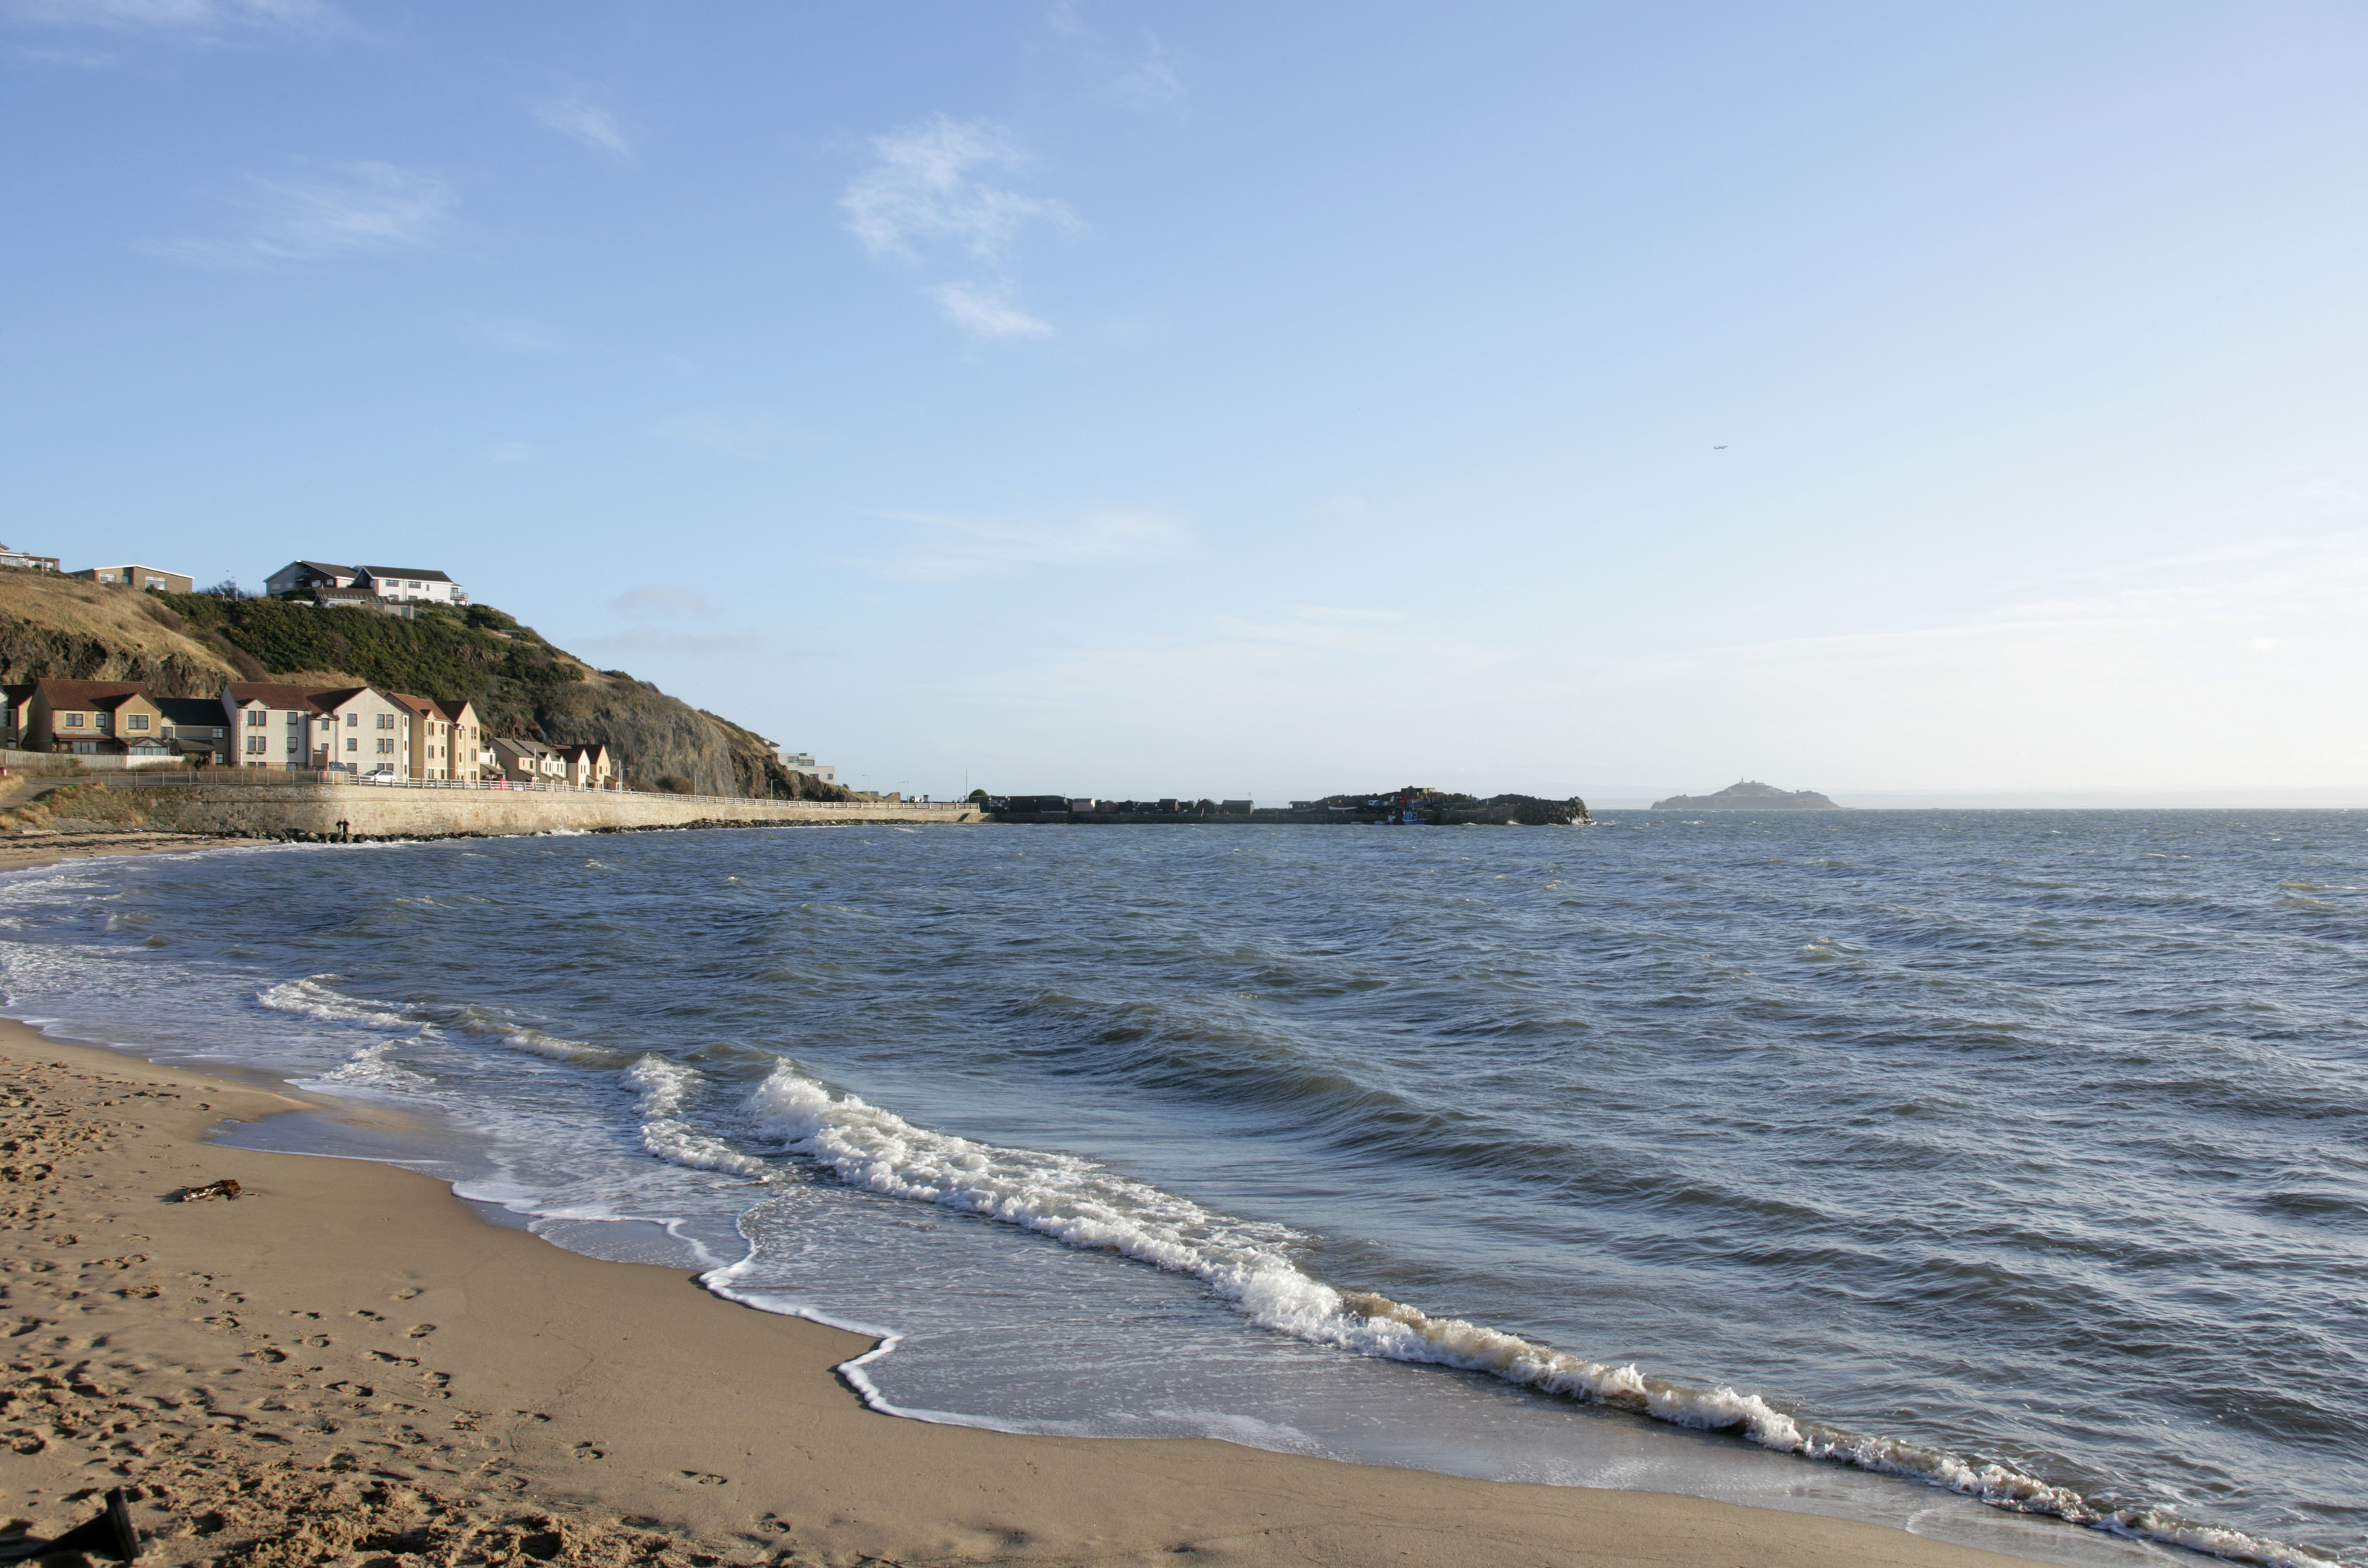 Pettycur Bay near Kinghorn has been the scene of some illegal shellfish rustling.